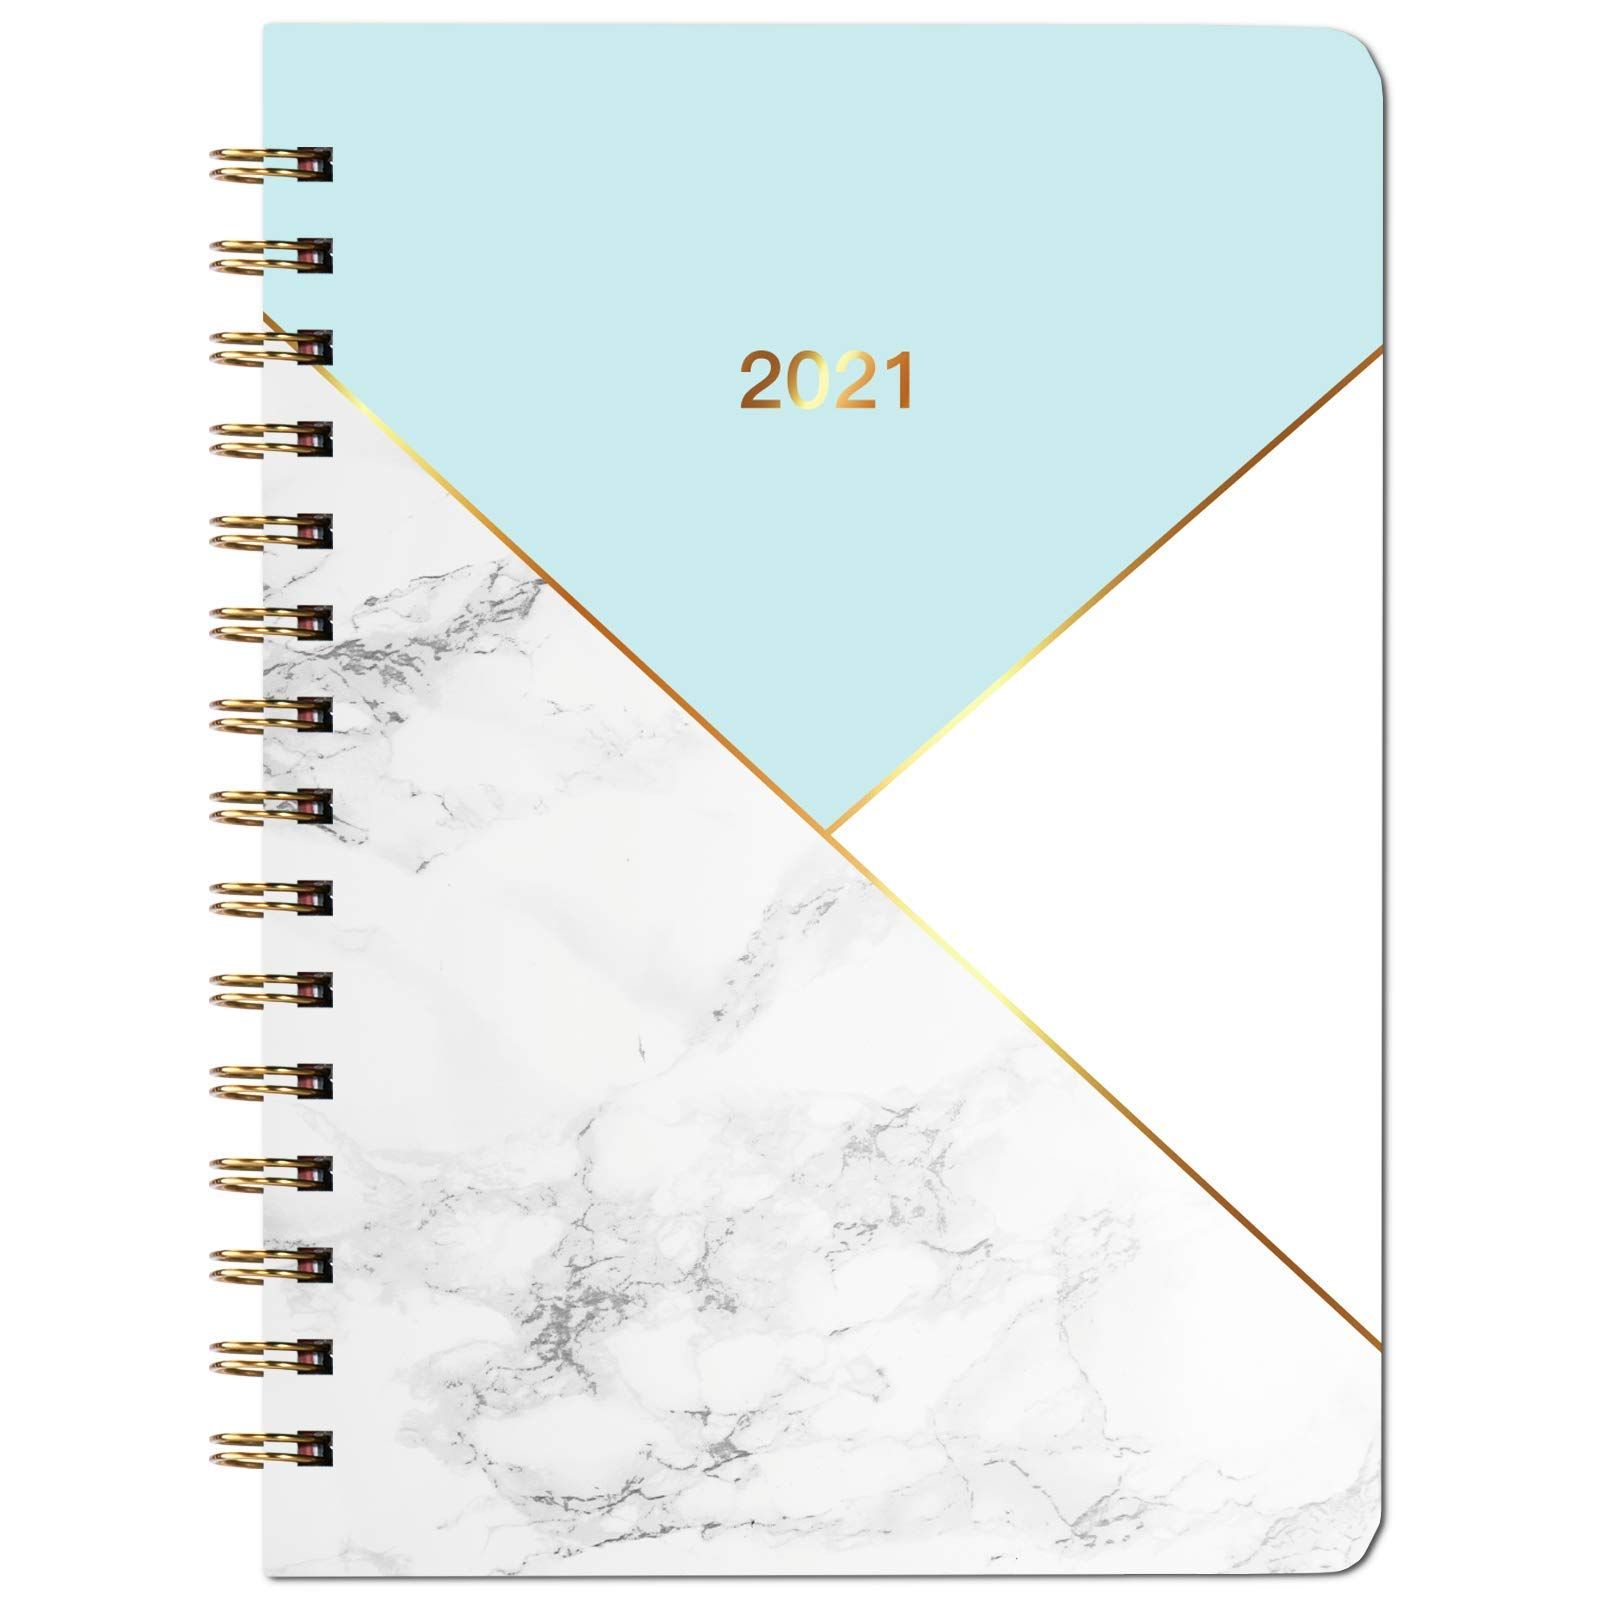 2021 Diary - Diary A5 Week to View, from January 2021 to December 2021, Hardcover with Inner Pocket, Twin-Wire Binding, Blue